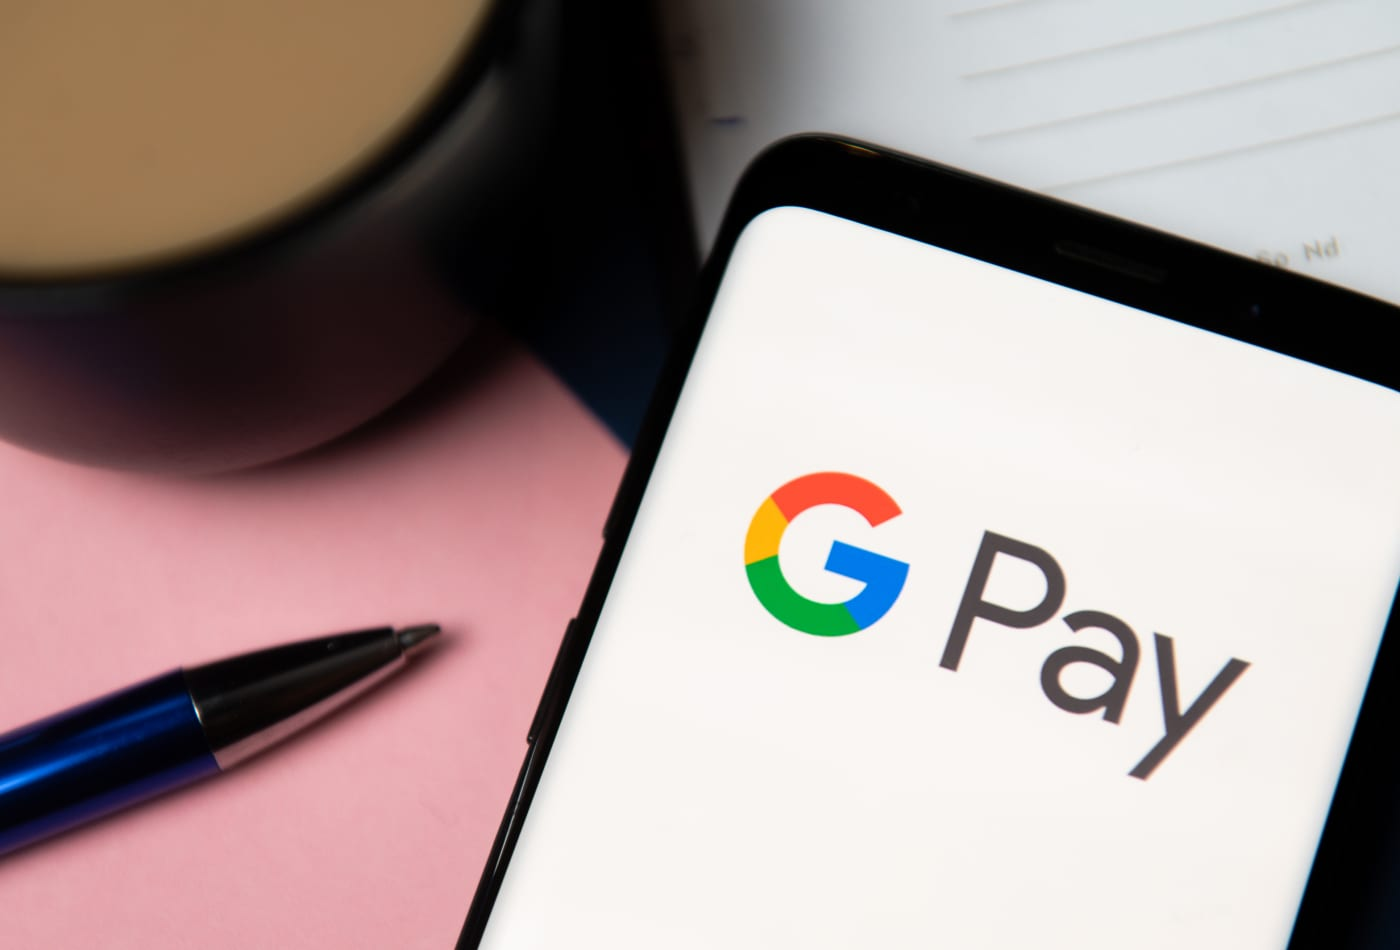 Google Pay now lets U.S. users send money to India and Singapore